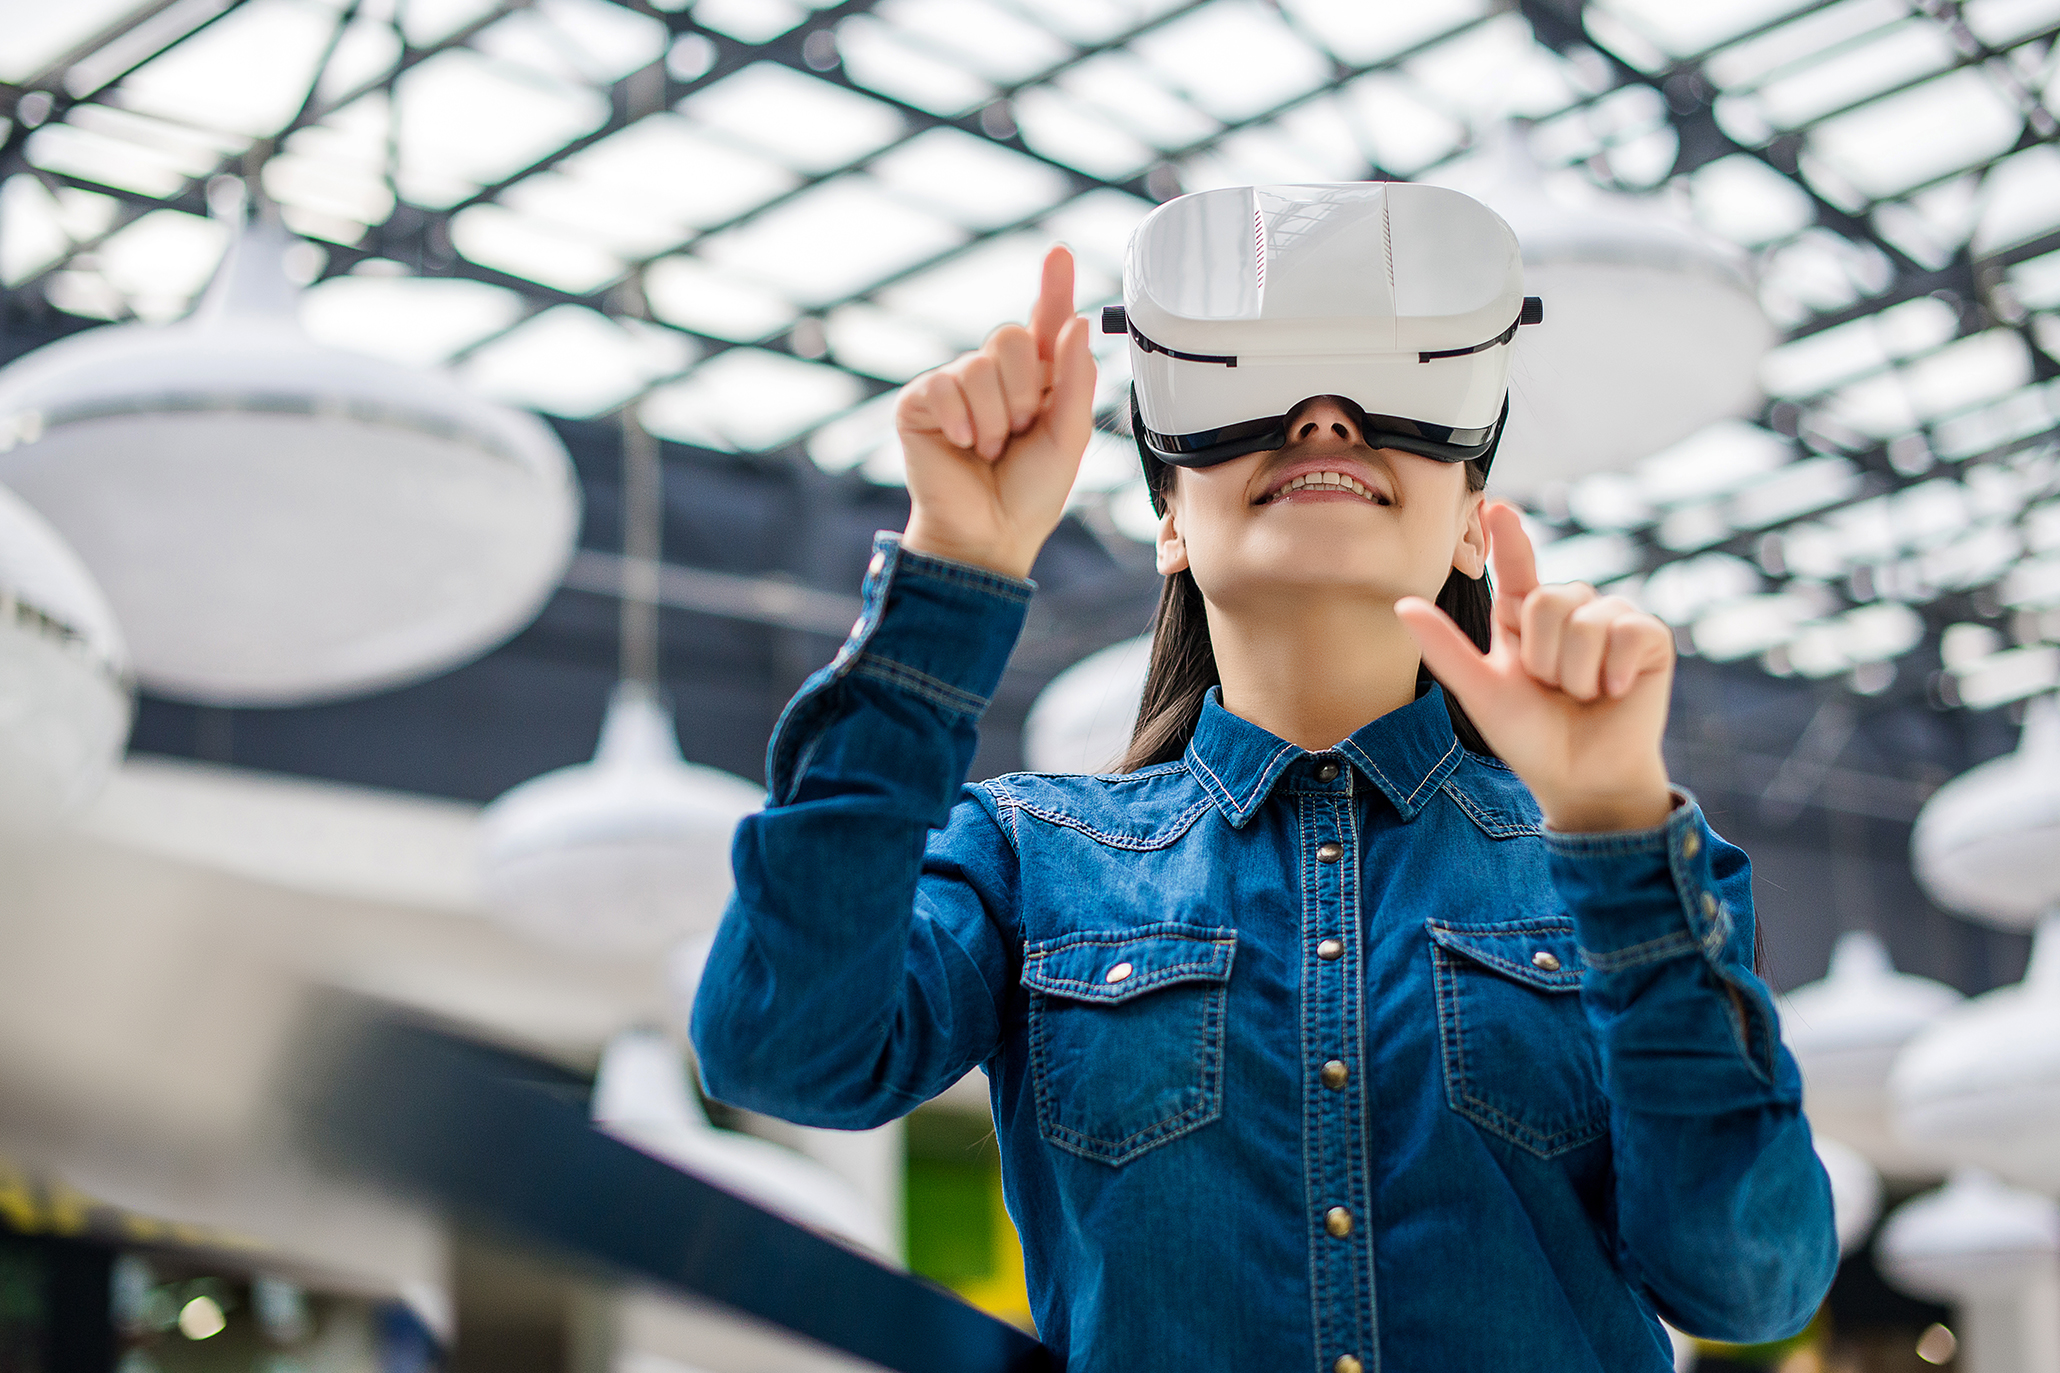 Virtual Reality as a storyteller | How Virtual Reality Can Boost A Brand's Storytelling